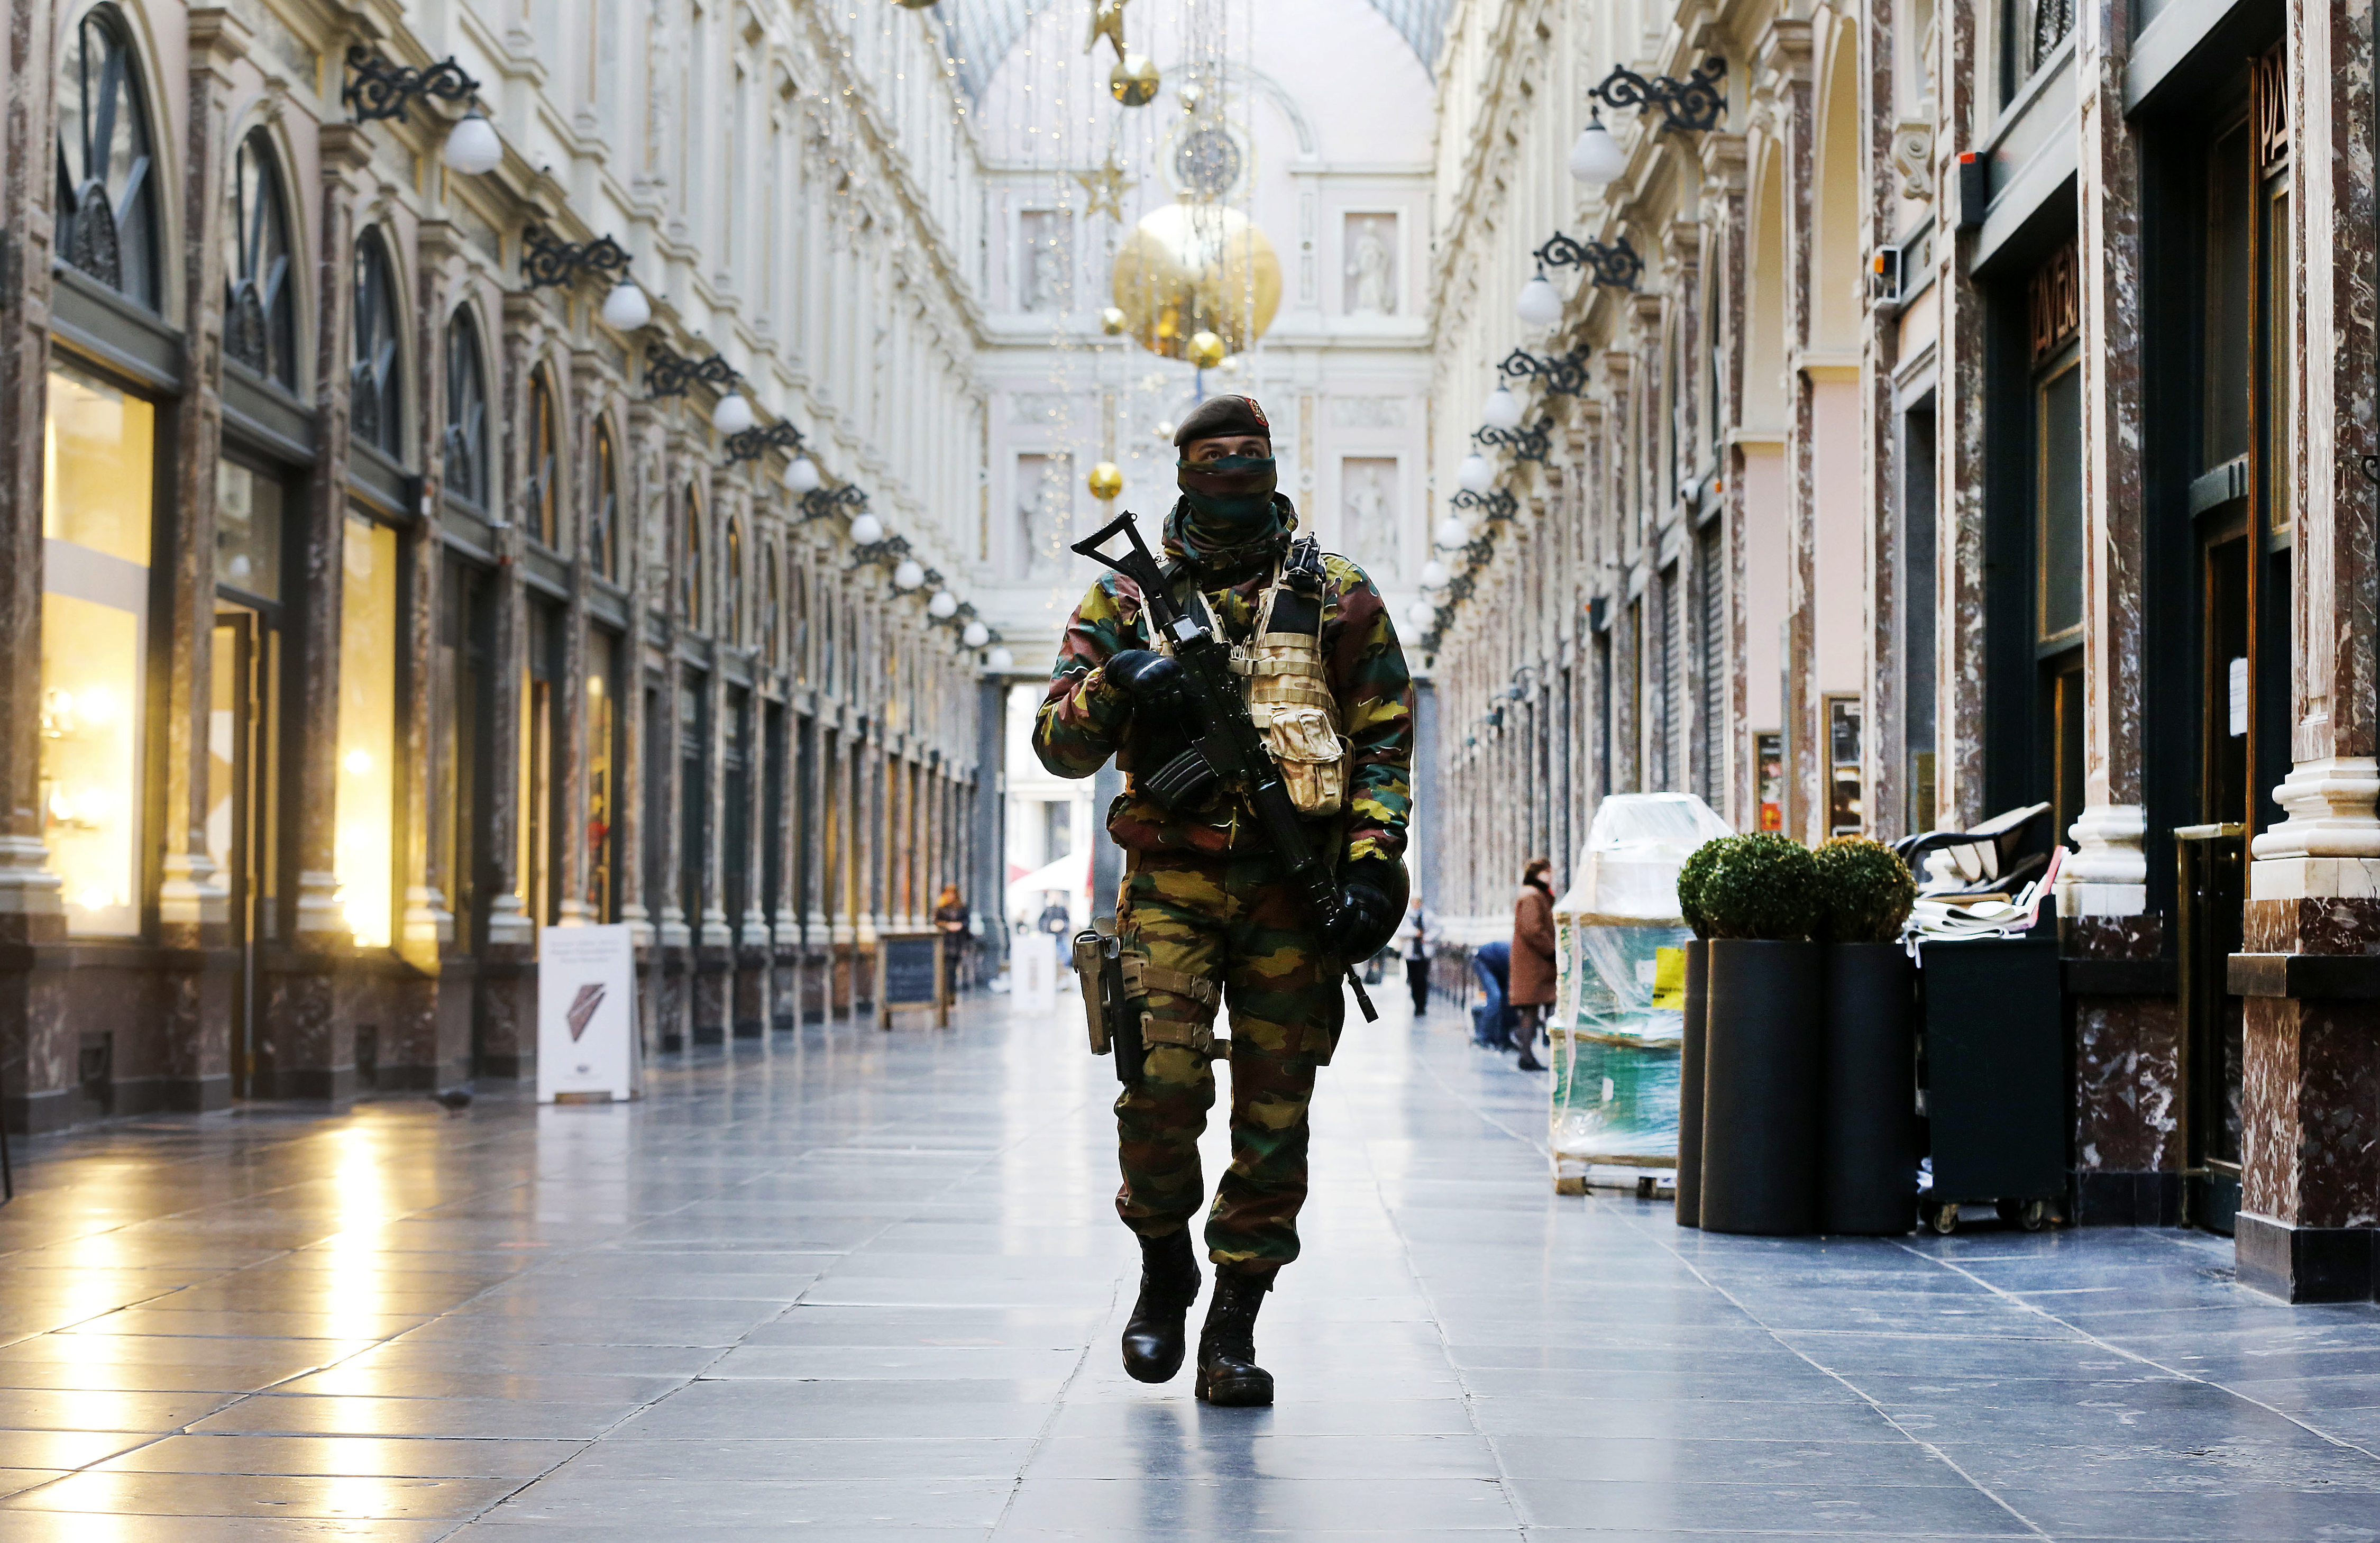 FILE - In this Thursday, Nov. 26, 2015 file photo, a Belgian Army soldier walks through the Galleries Royal Saint-Hubert in the center of Brussels. Some experts say it will take months for Europeans to psychologically adapt to life after the Paris at